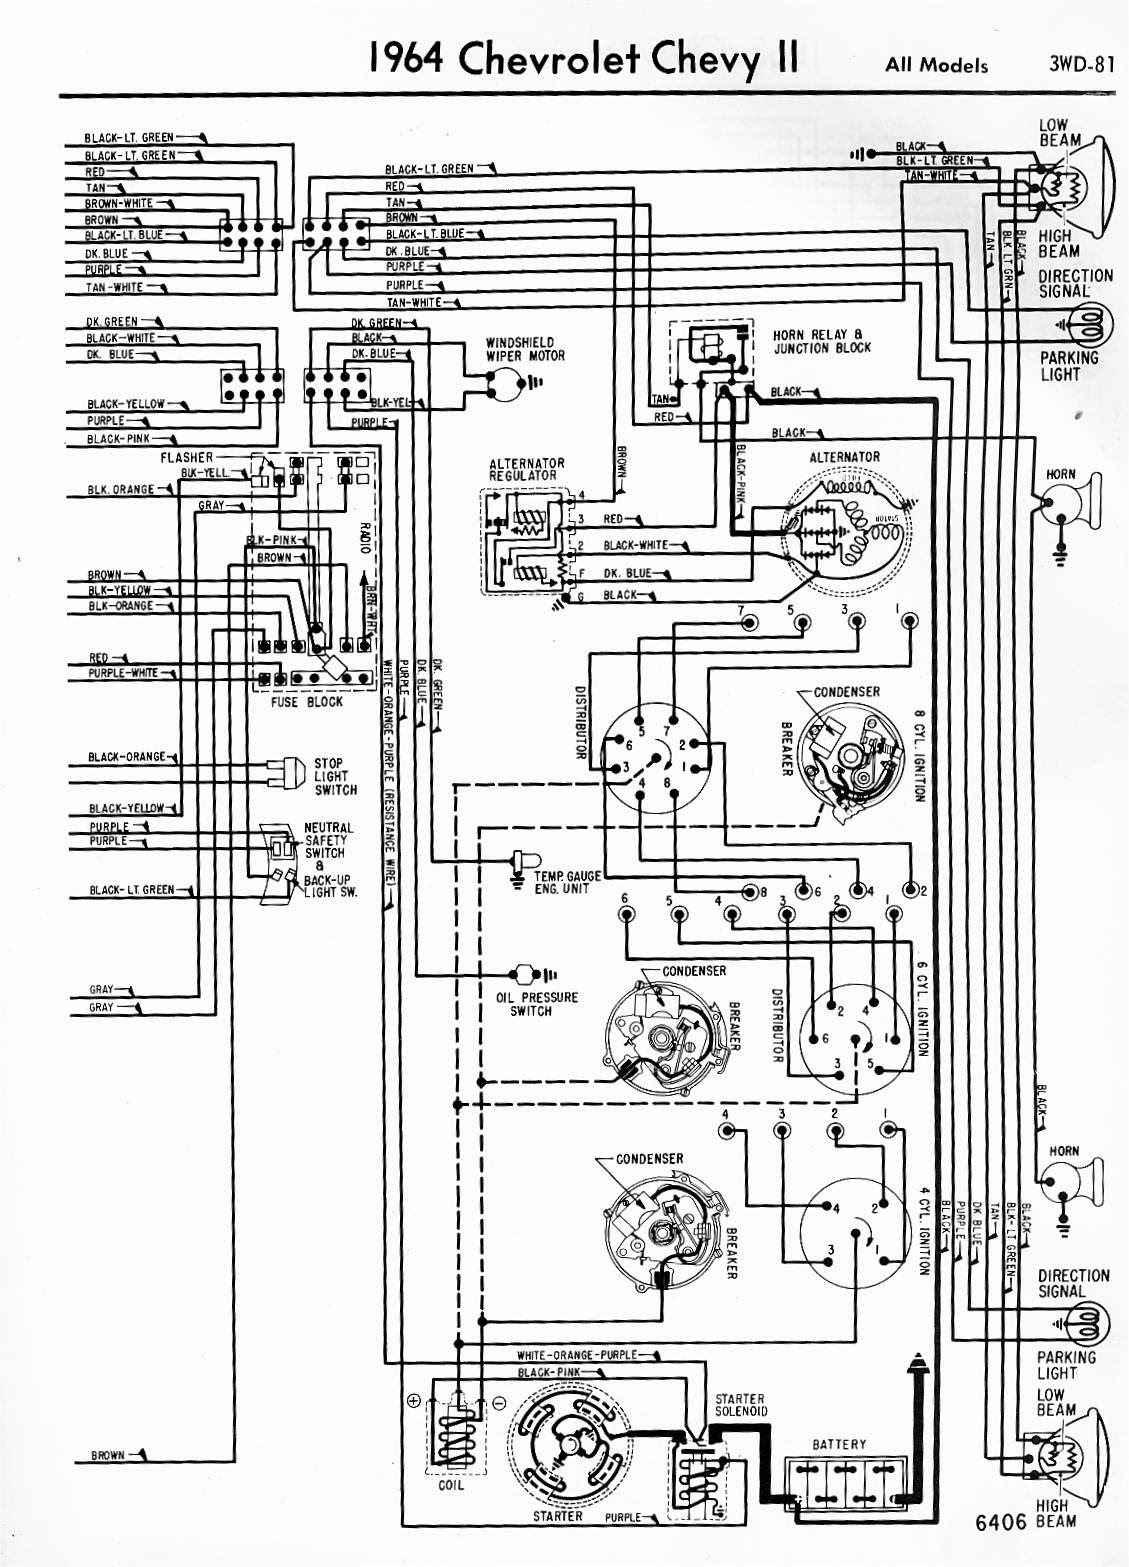 1967 Chevy Nova Dash Wiring Diagram Wiring Diagram Frame Frame Cfcarsnoleggio It